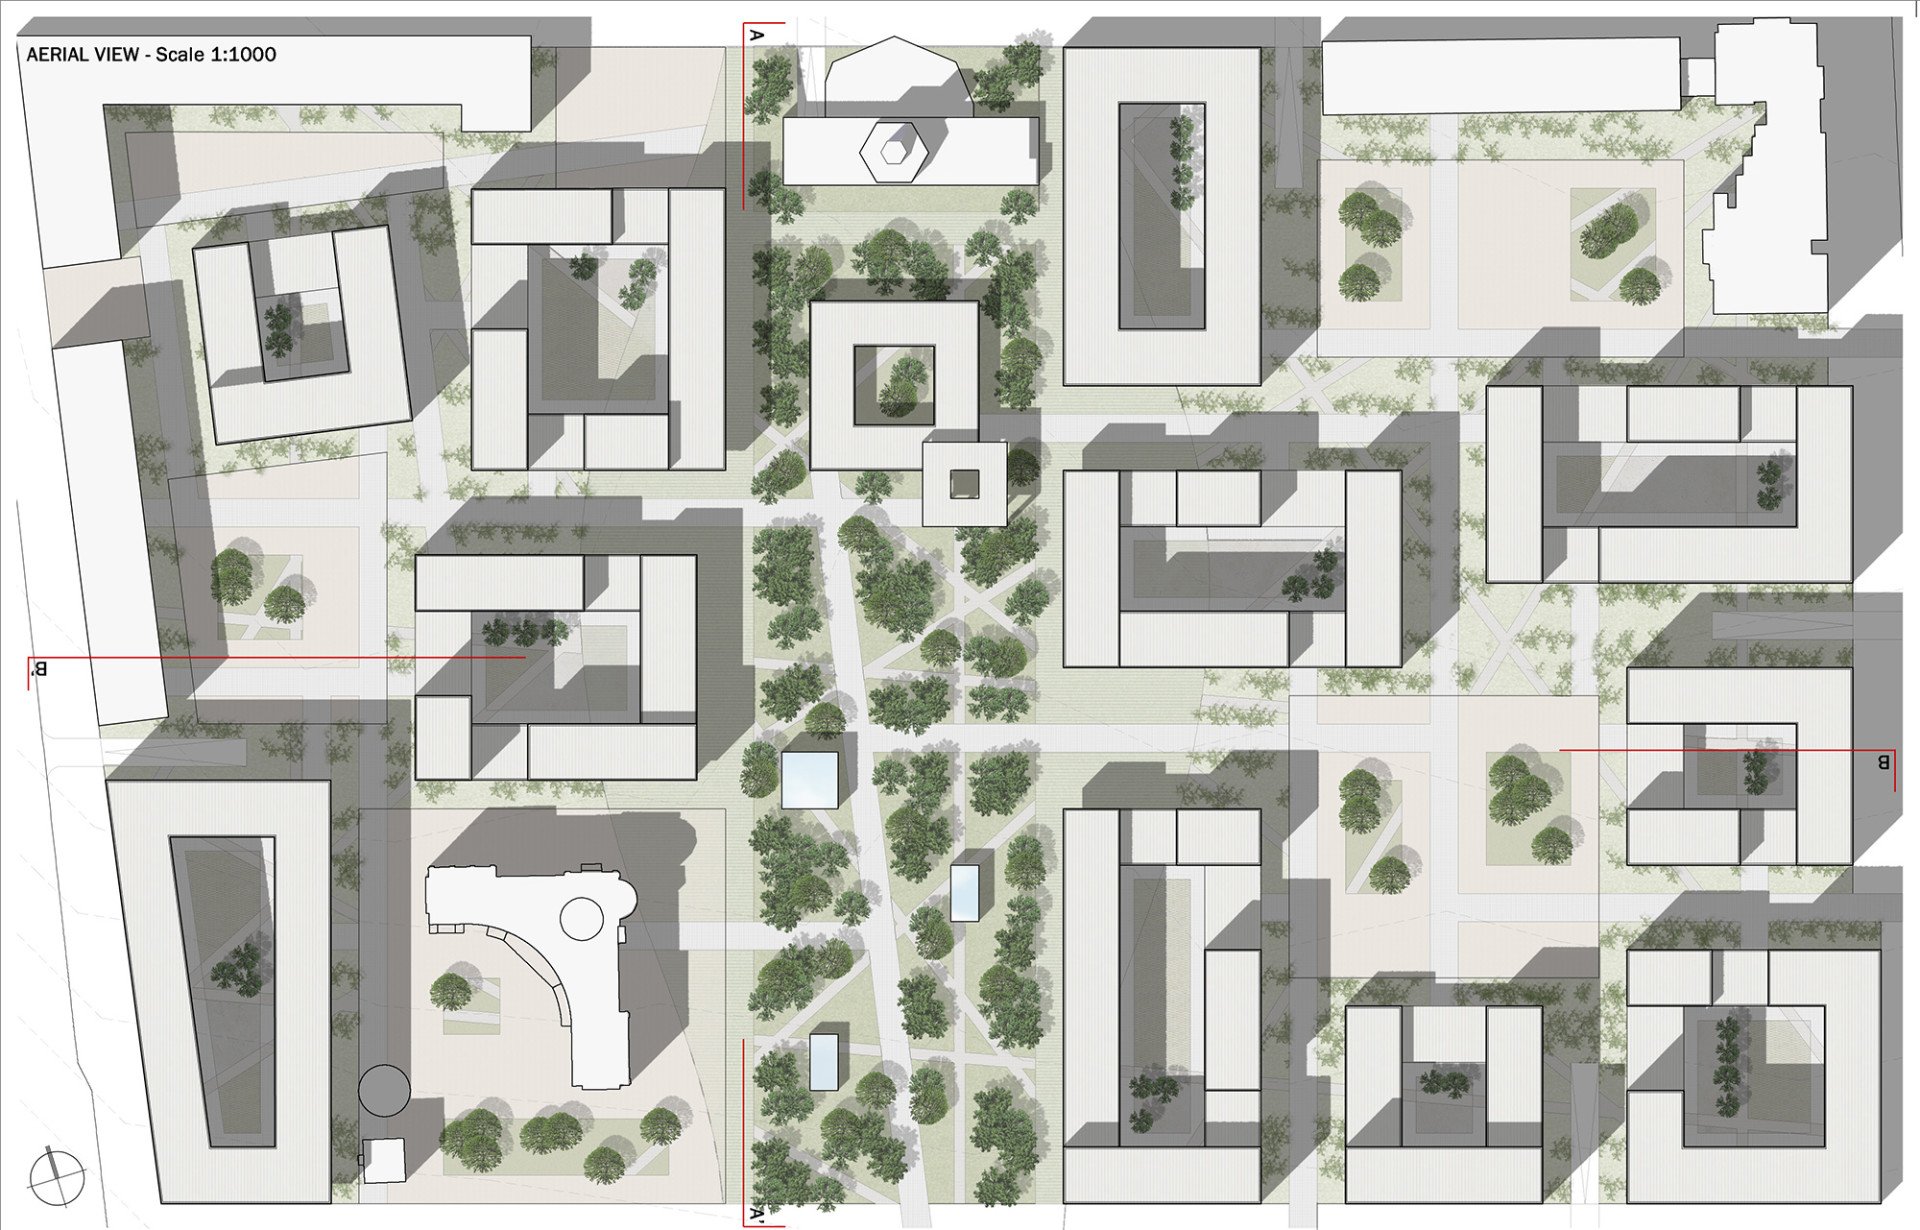 urban design in the planning system Burditt land | place is an integrated planning and design firm grounded in the disciplines of community planning, landscape architecture, architecture, and natural systems.